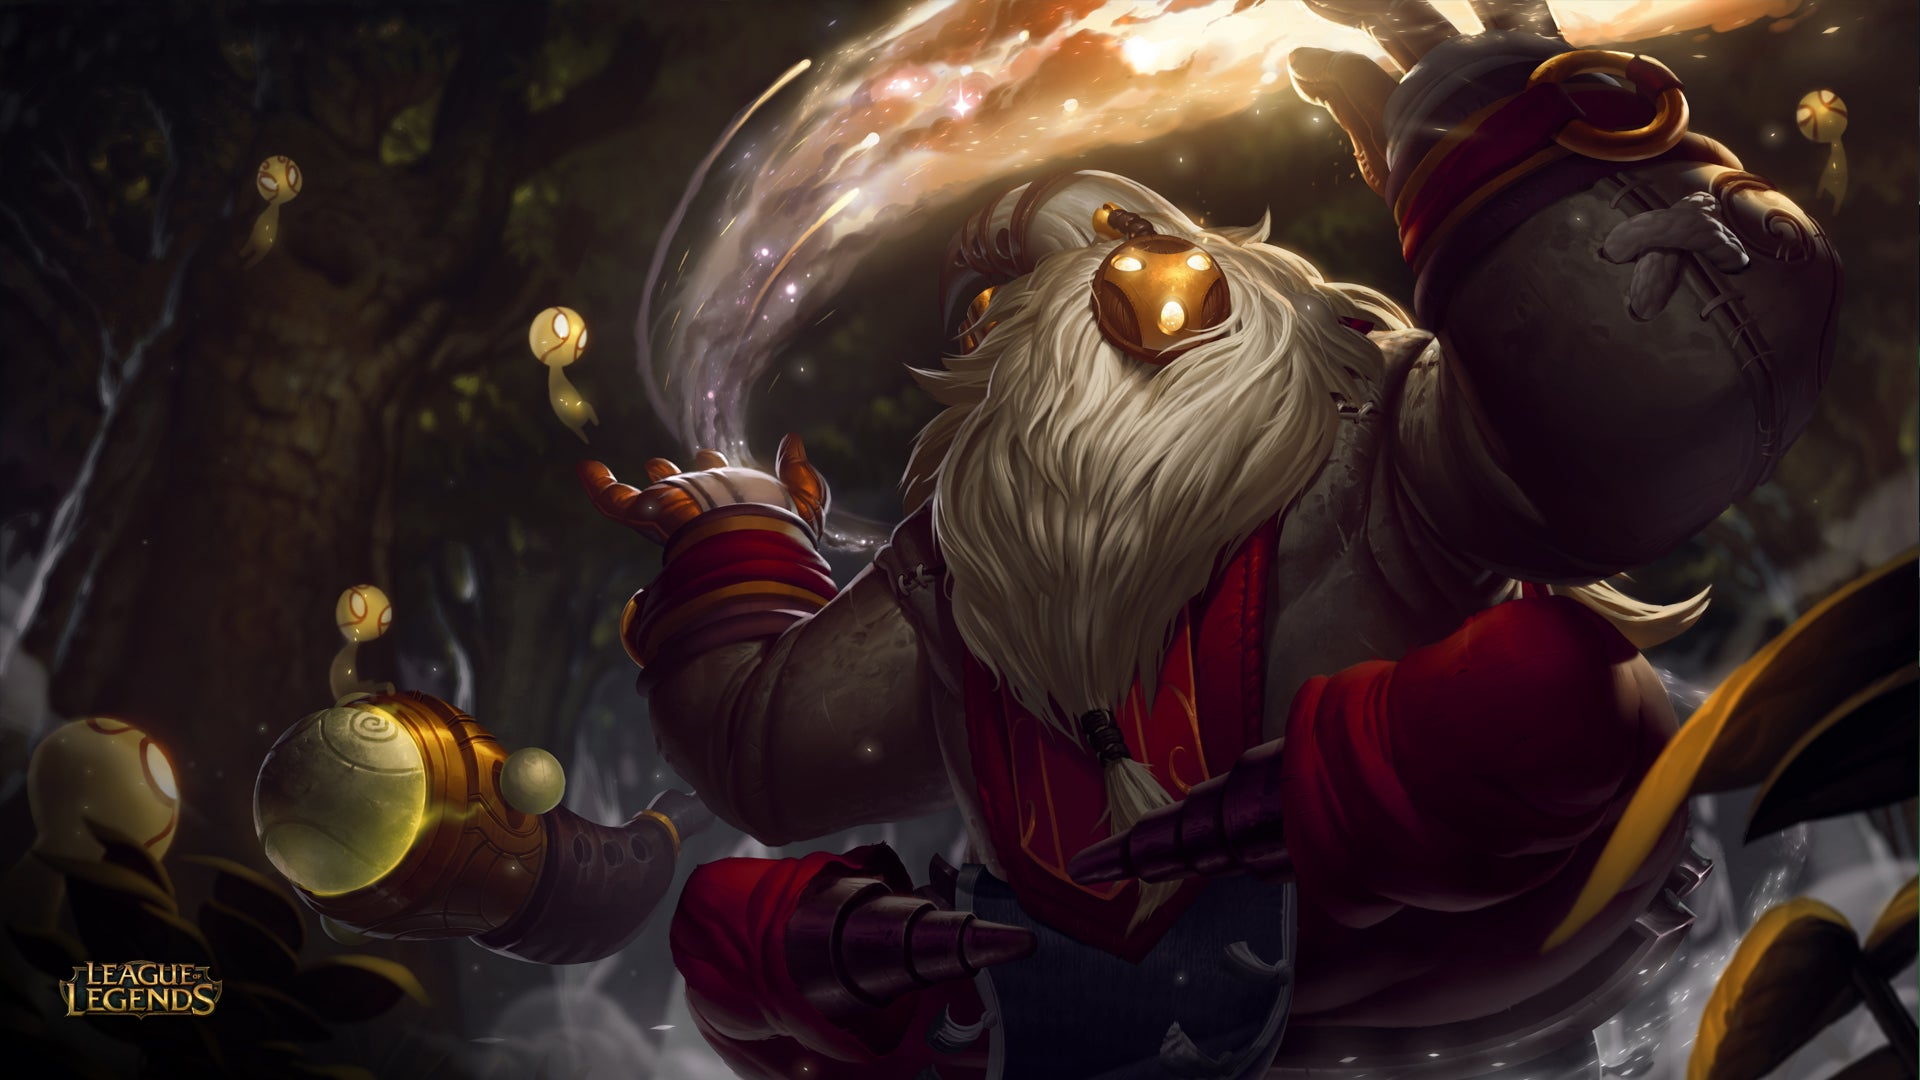 The Bard Is League Of Legends' Newest Champion